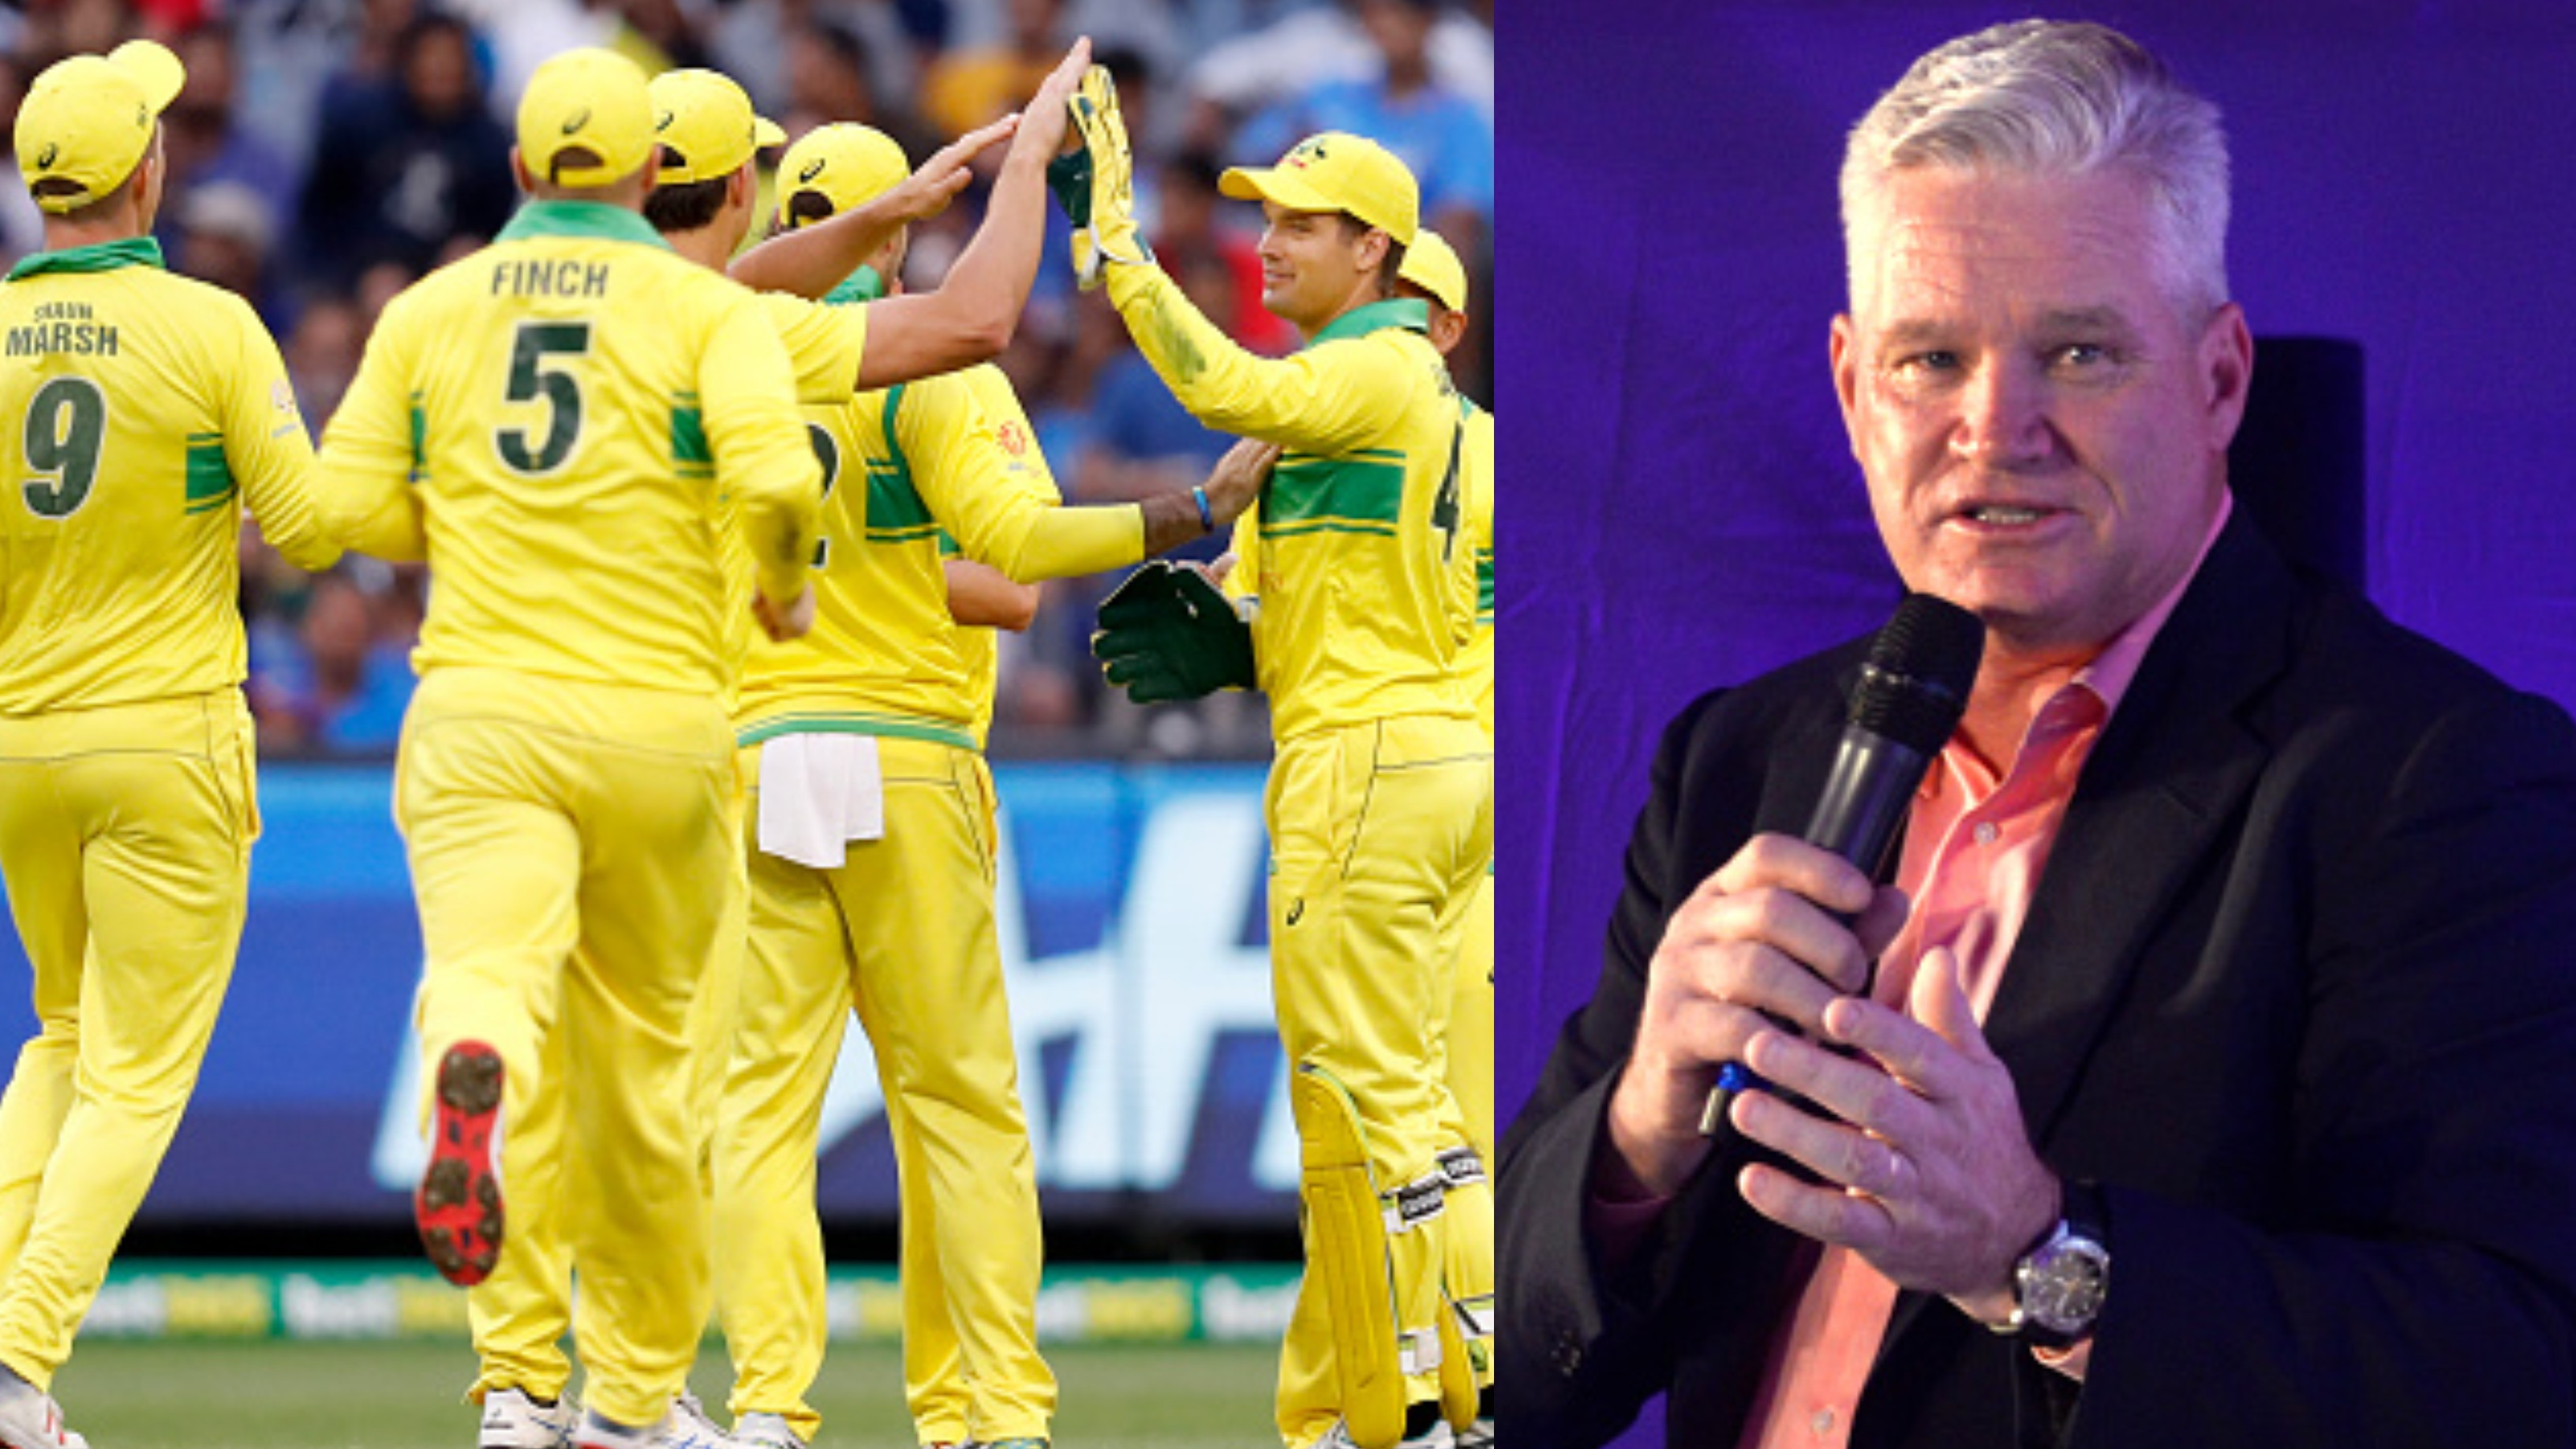 CWC 2019: Australia needs to dream to win World Cup 2019, says Dean Jones